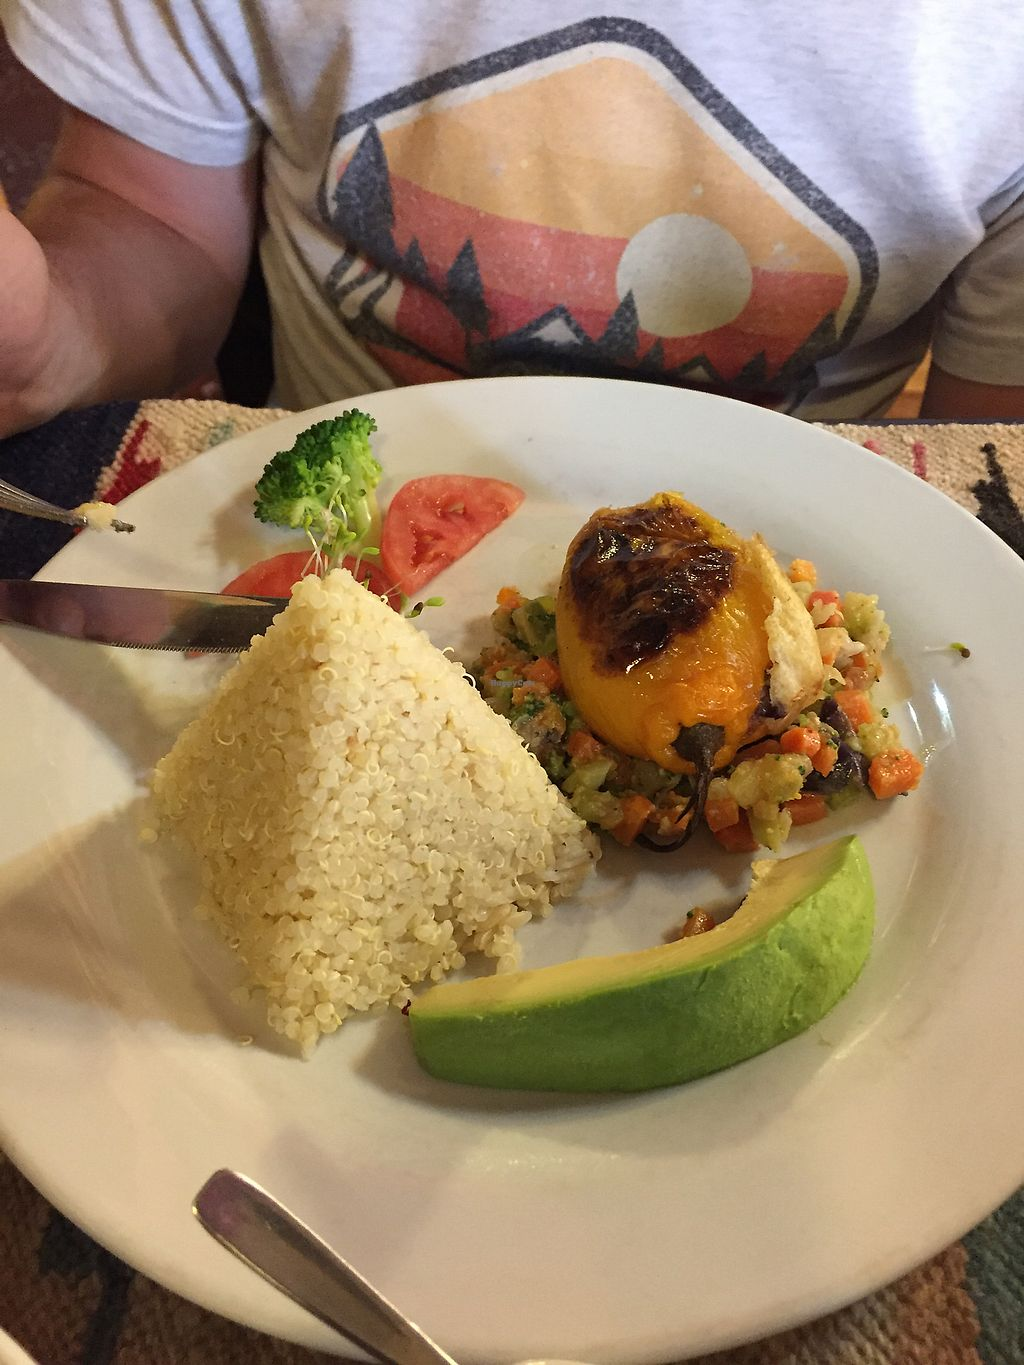 """Photo of Shaman Restaurant  by <a href=""""/members/profile/Dianebg"""">Dianebg</a> <br/>Rocoto relleno (stuffed capsicum / pepper) <br/> October 17, 2017  - <a href='/contact/abuse/image/35868/316151'>Report</a>"""